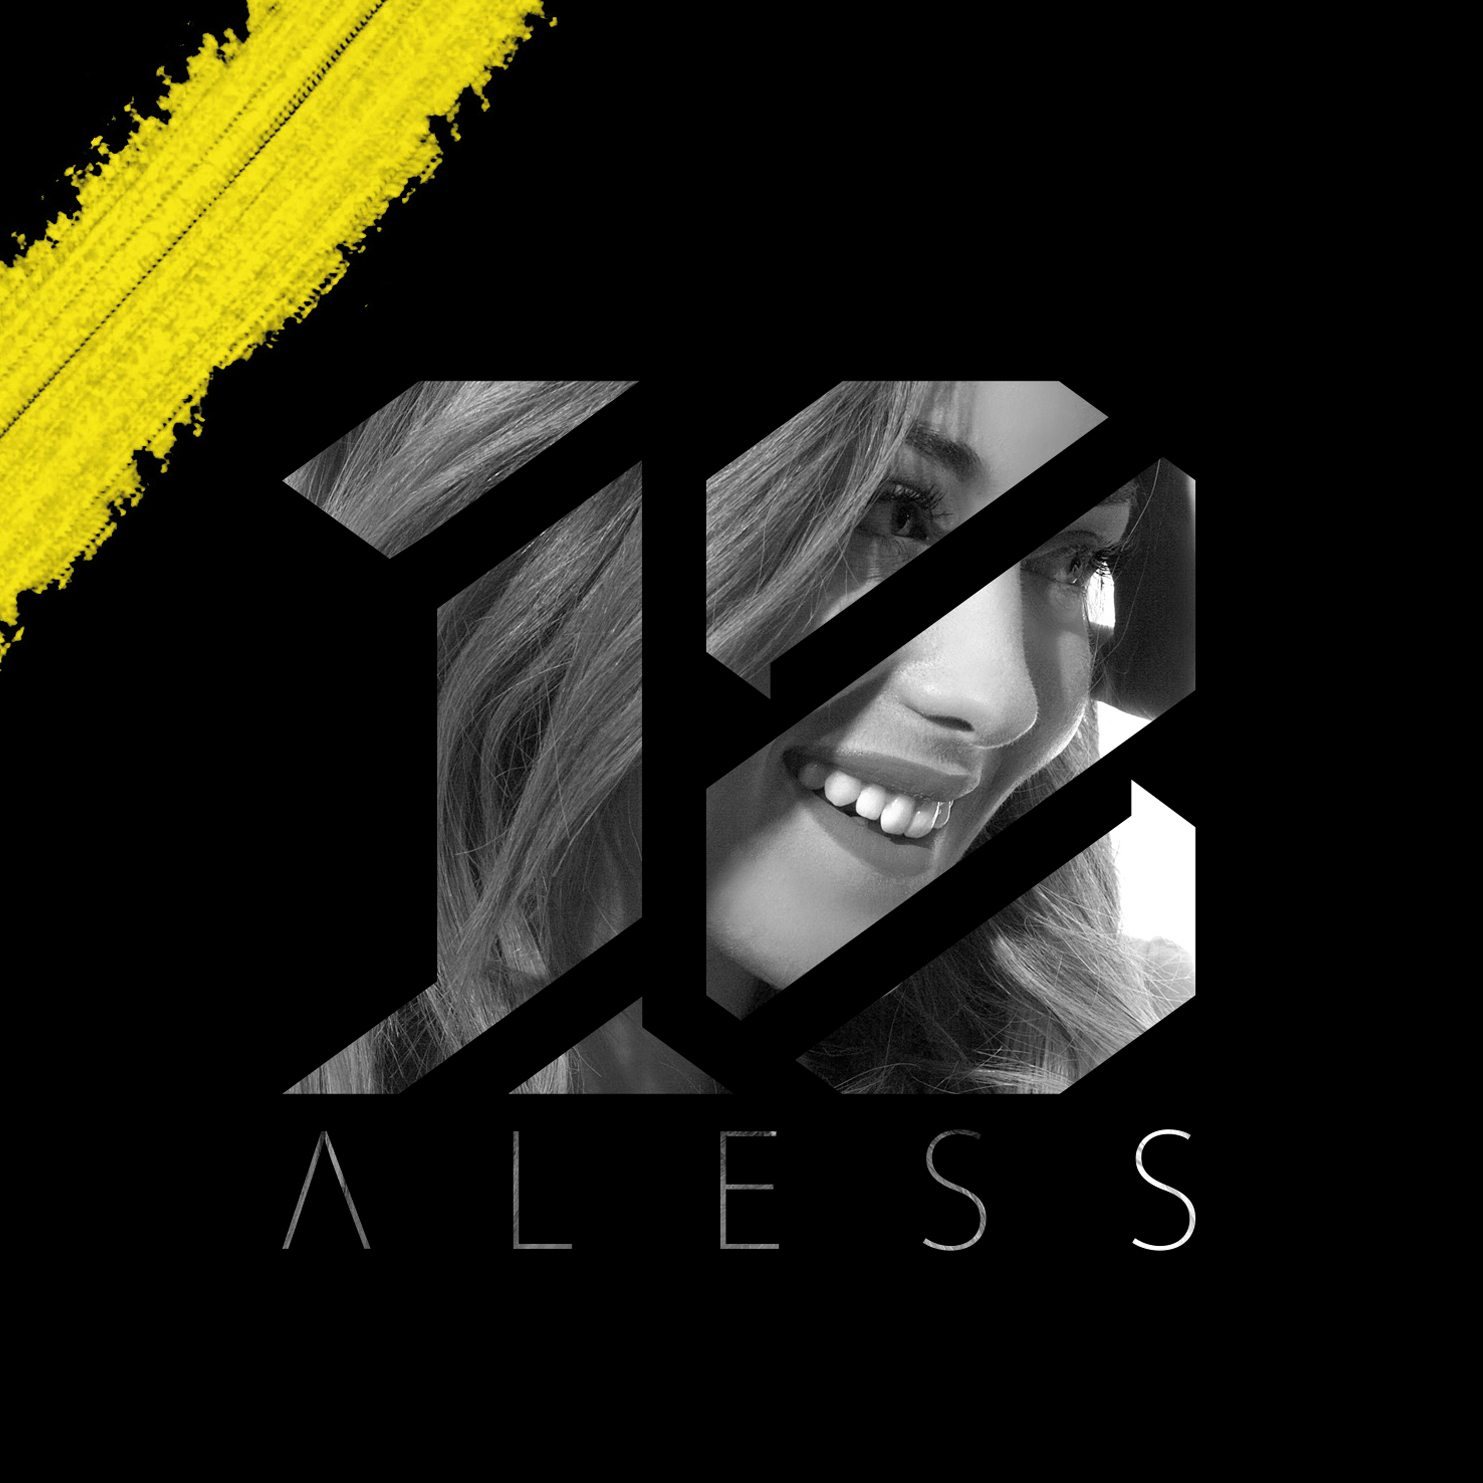 Aless - 18